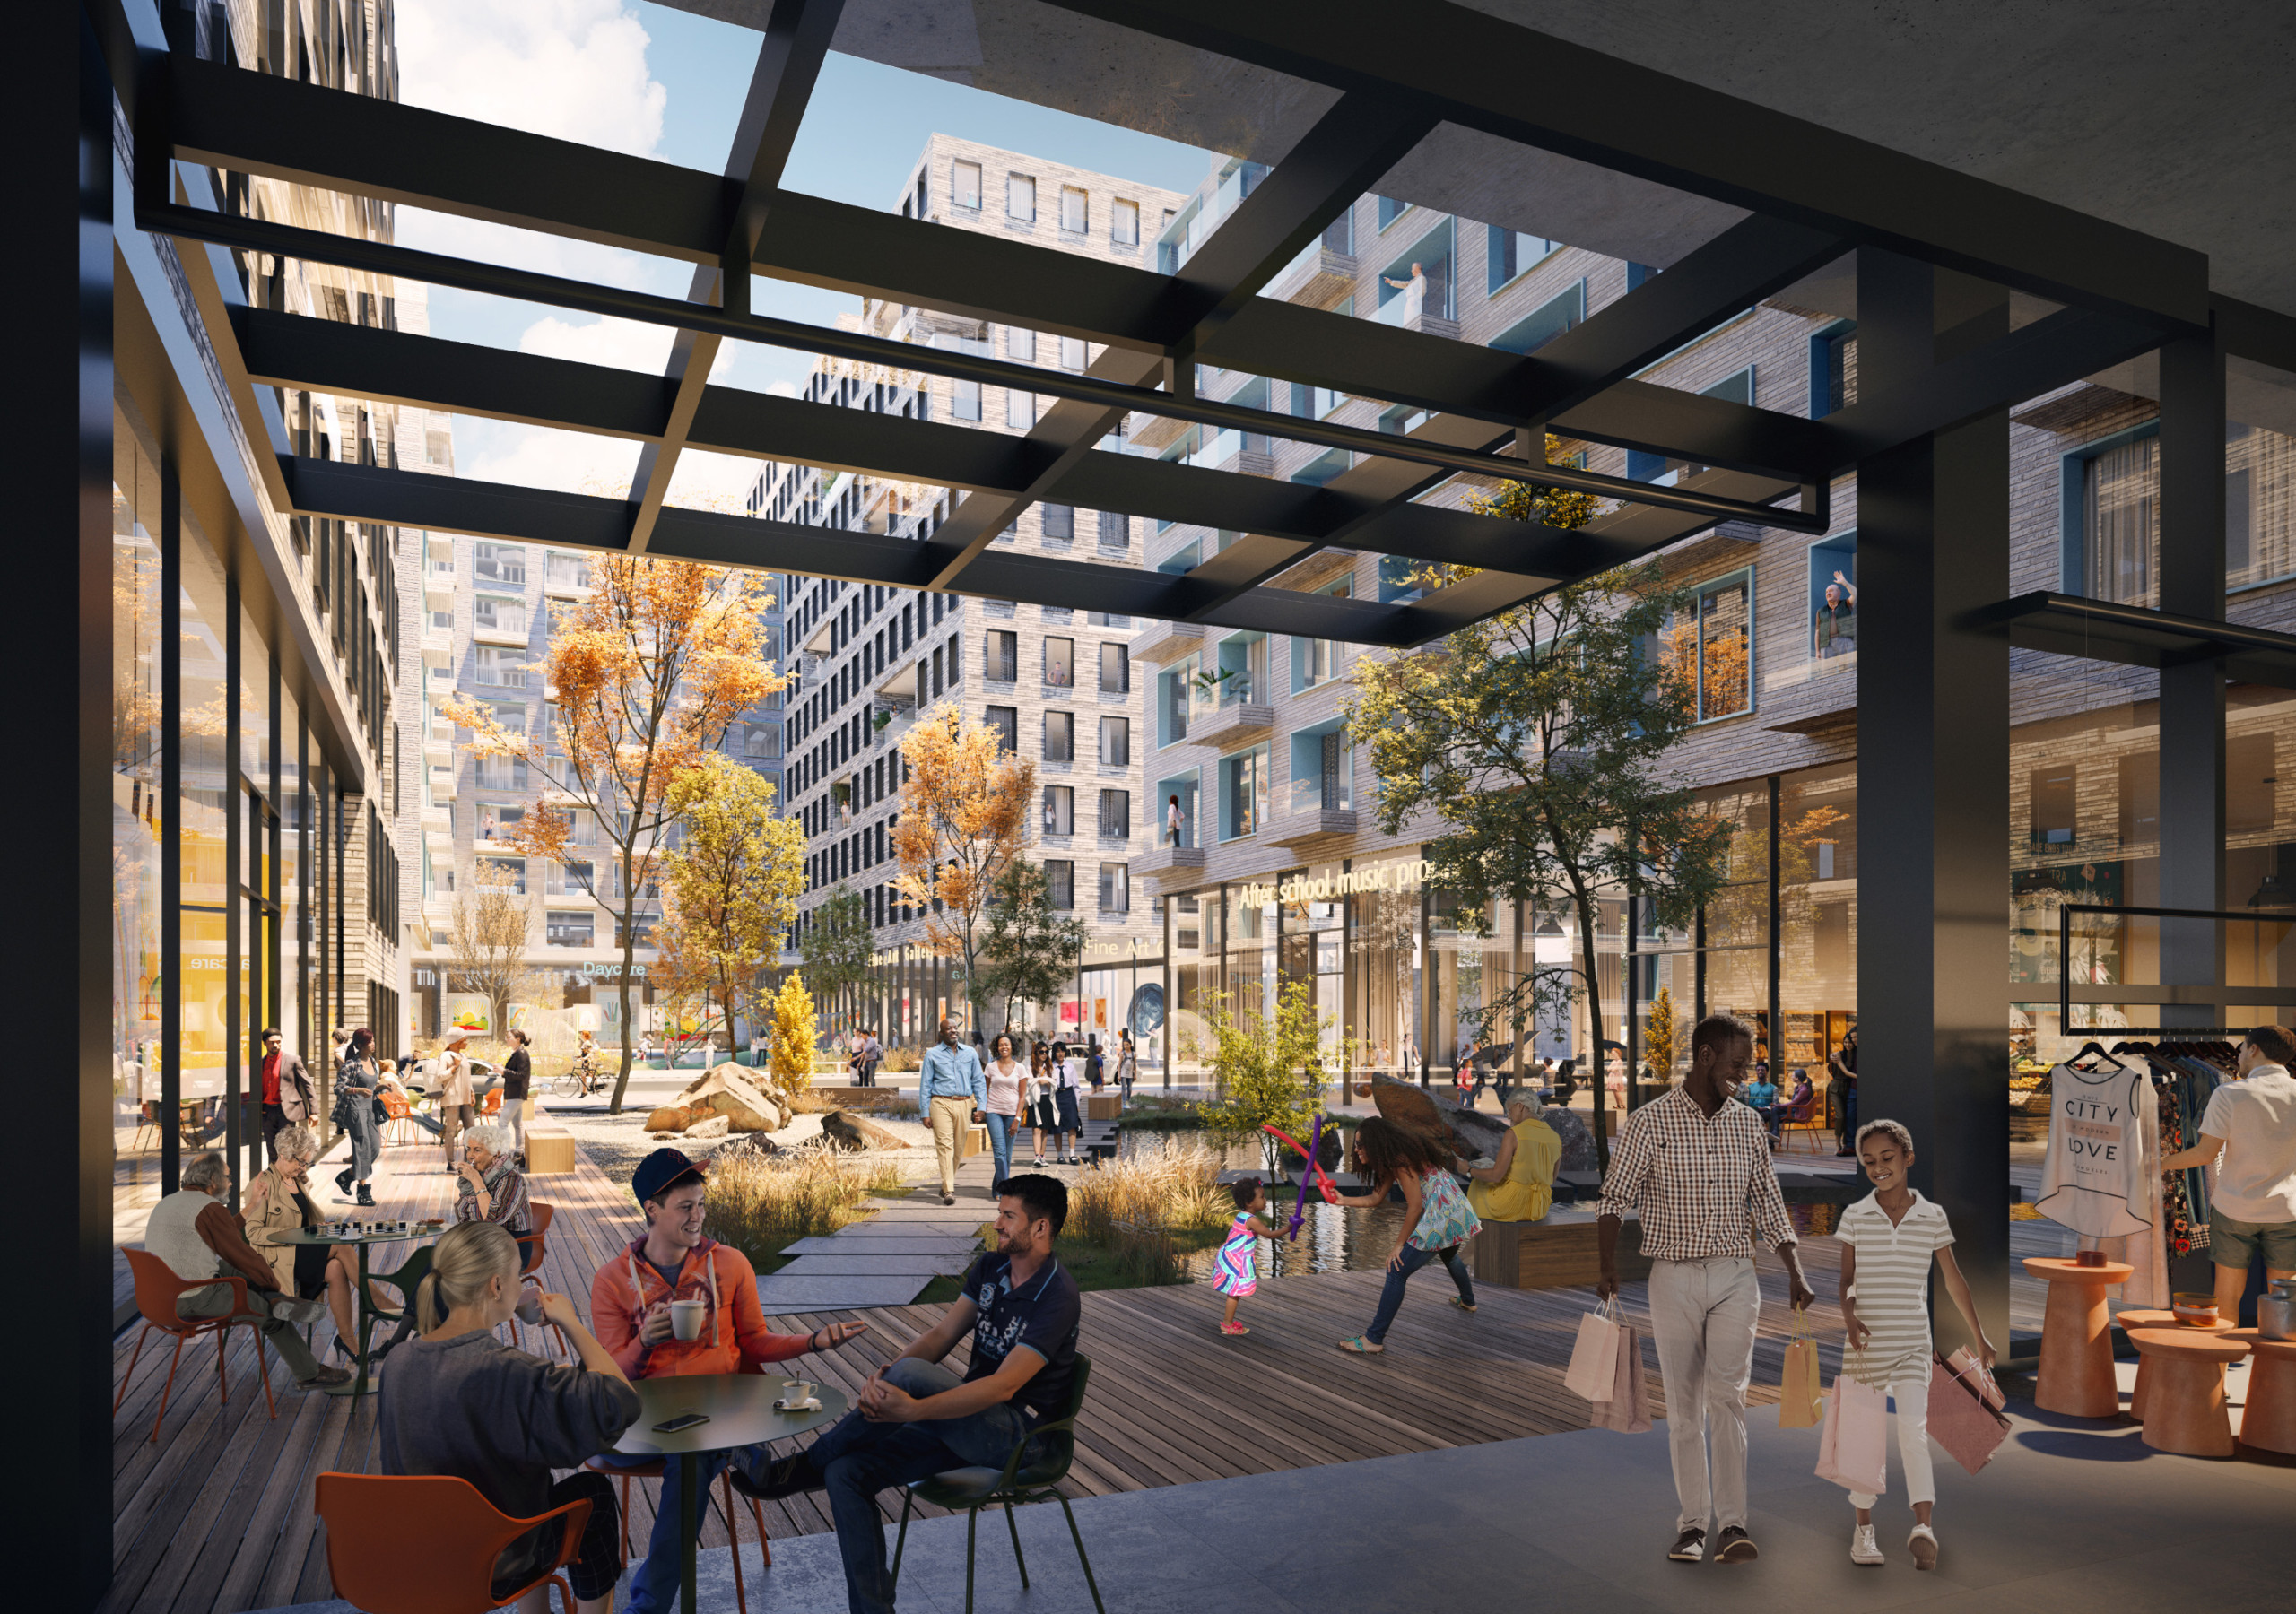 Rendering of a plaza with outdoor retail